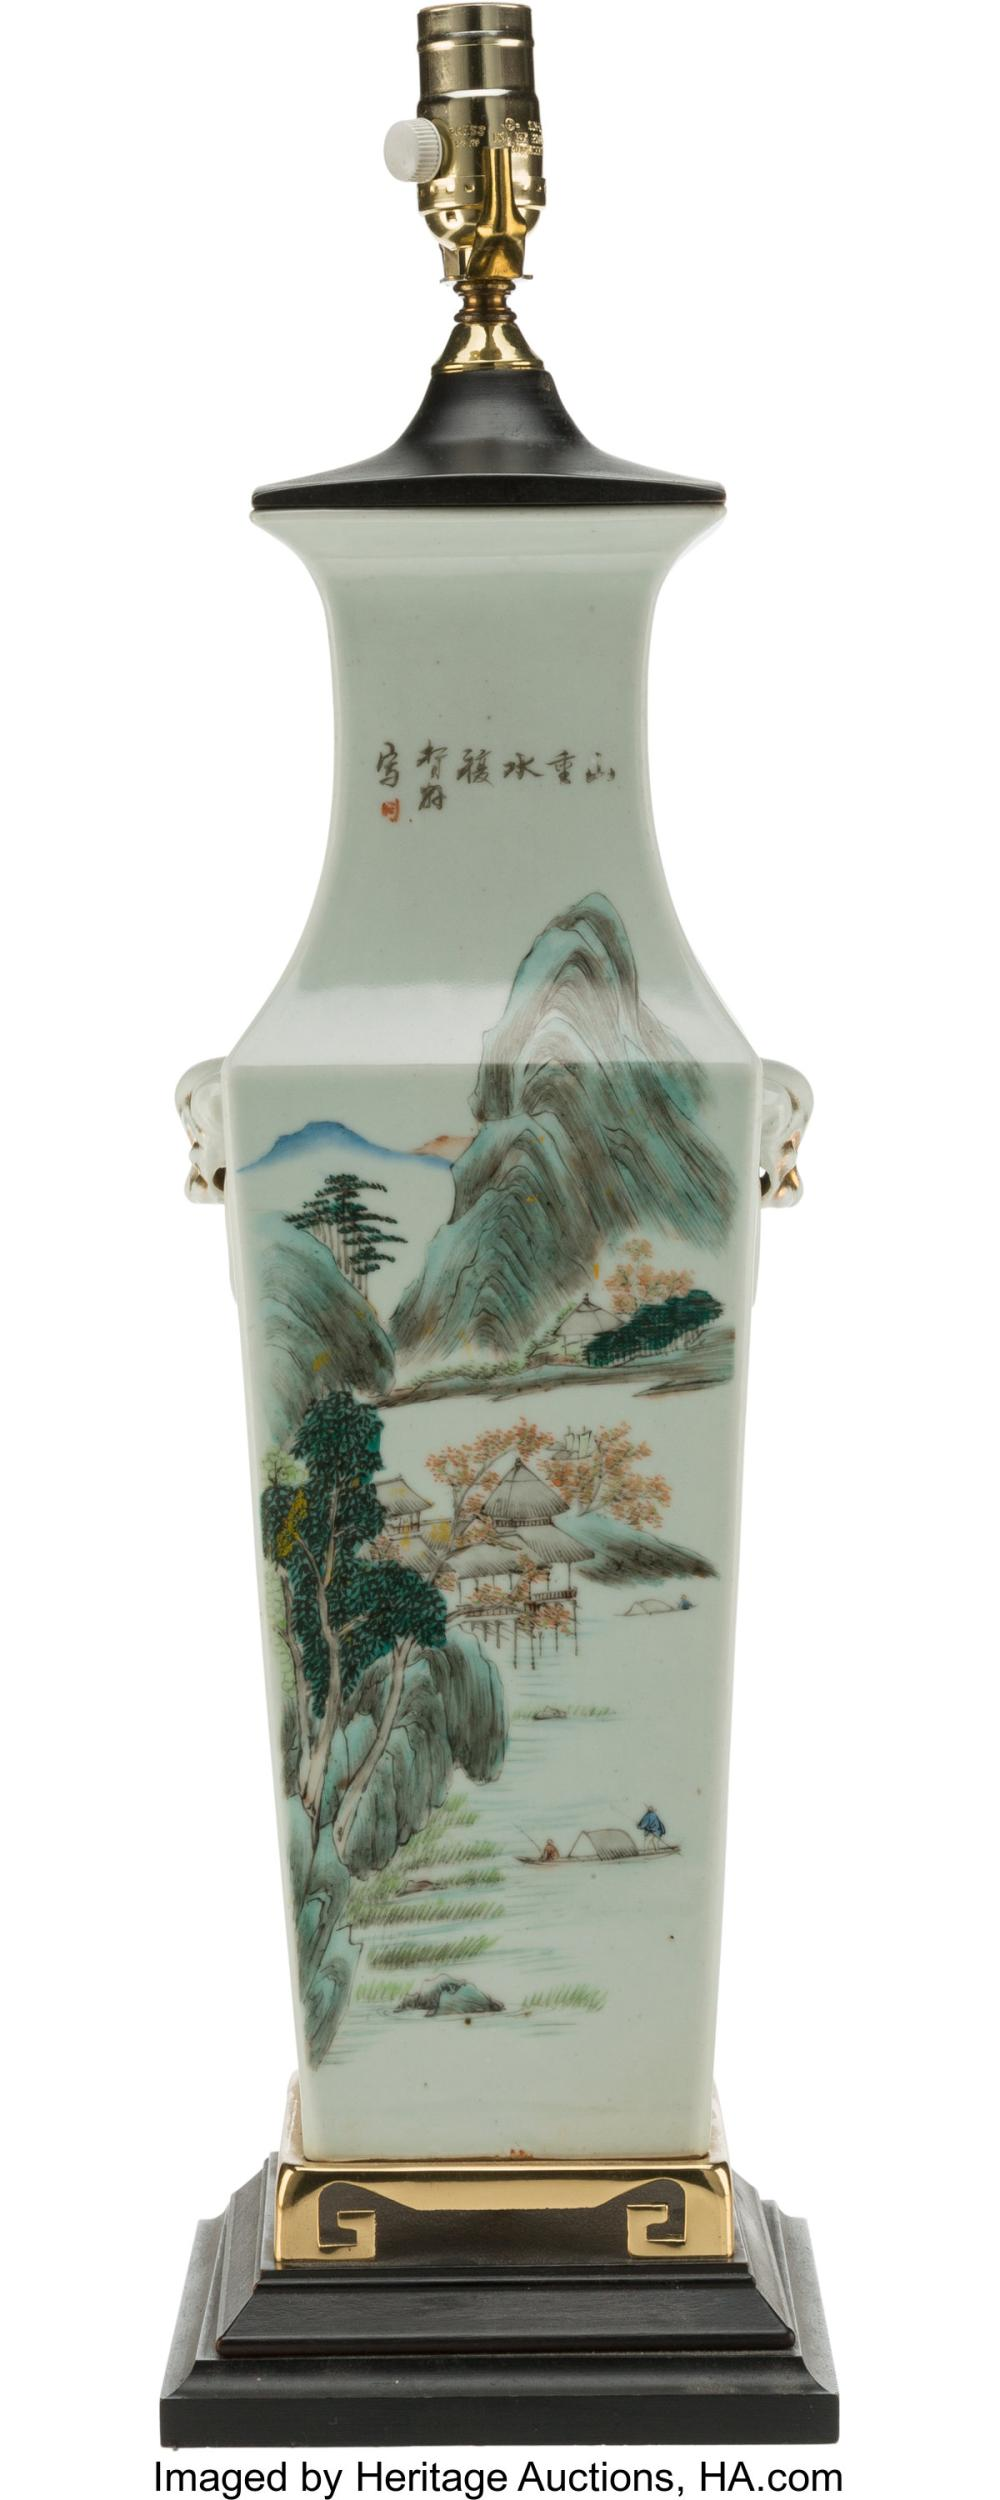 Lot 21296: A Chinese Partial Gilt Enameled Porcelain Lamp, 20th century 25-1/8 x 7 inches (